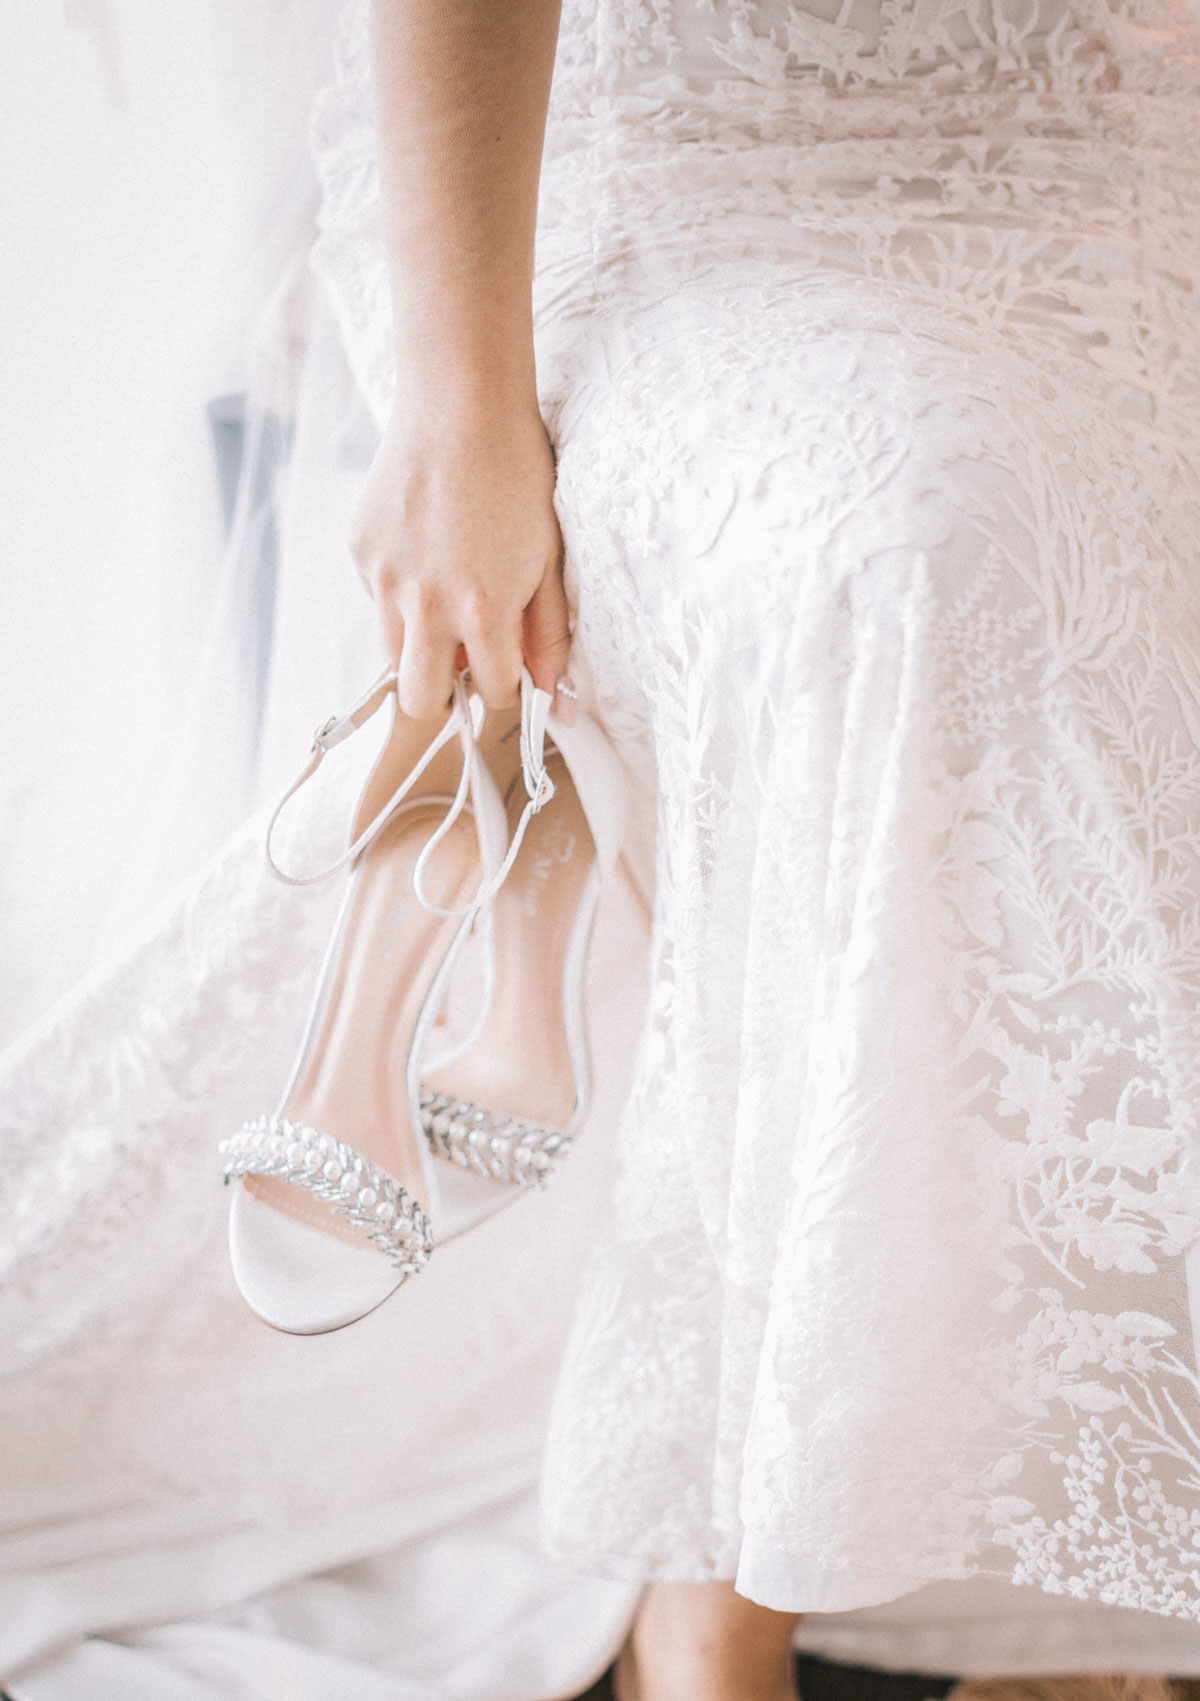 woman-in-white-gown-carrying-white-sandals